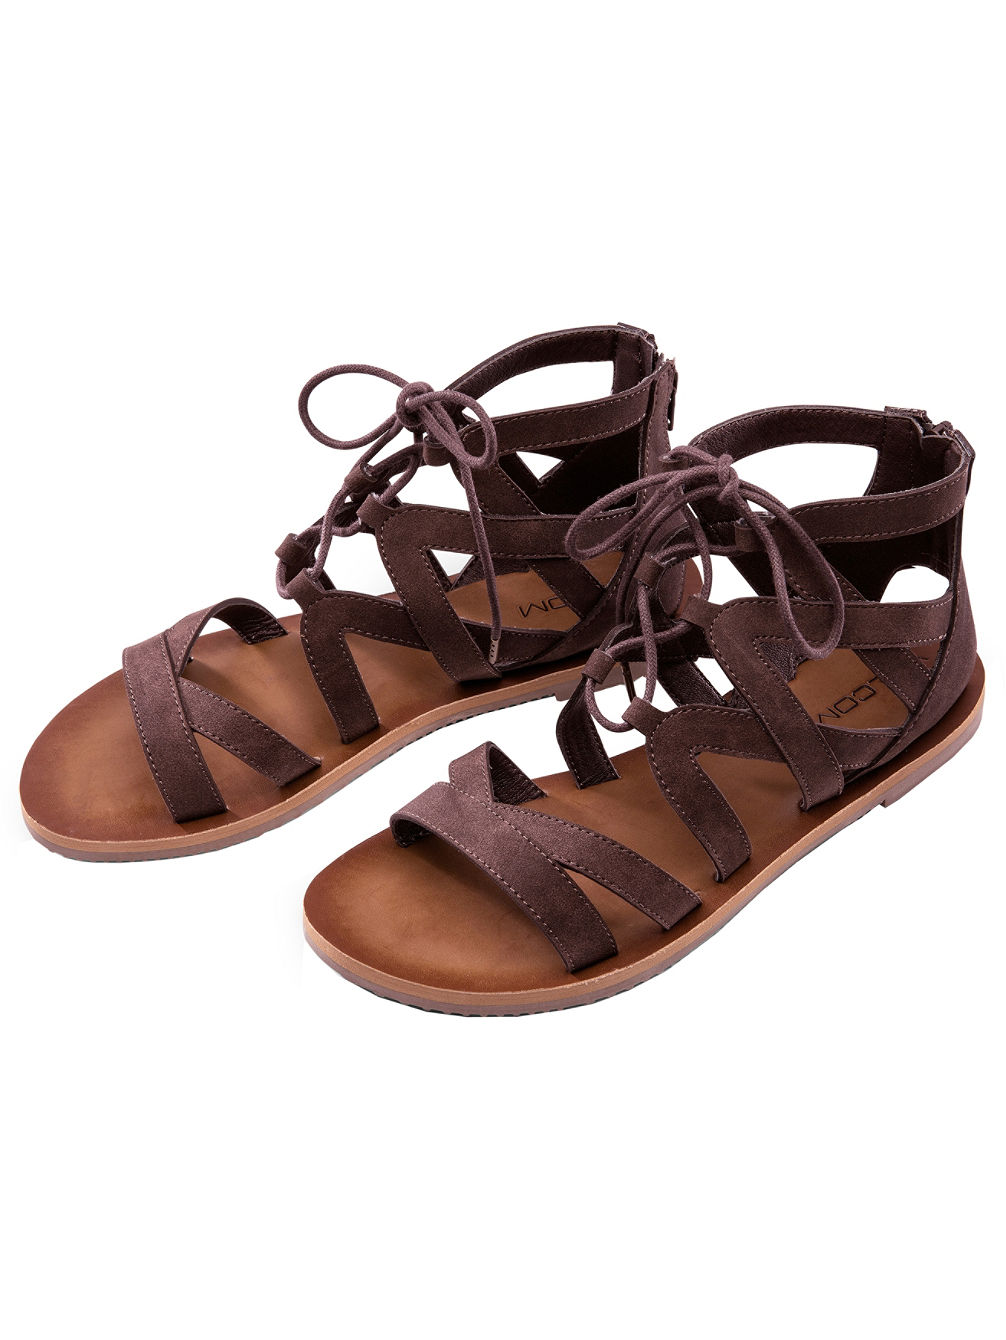 Bowie Road Sandals Women